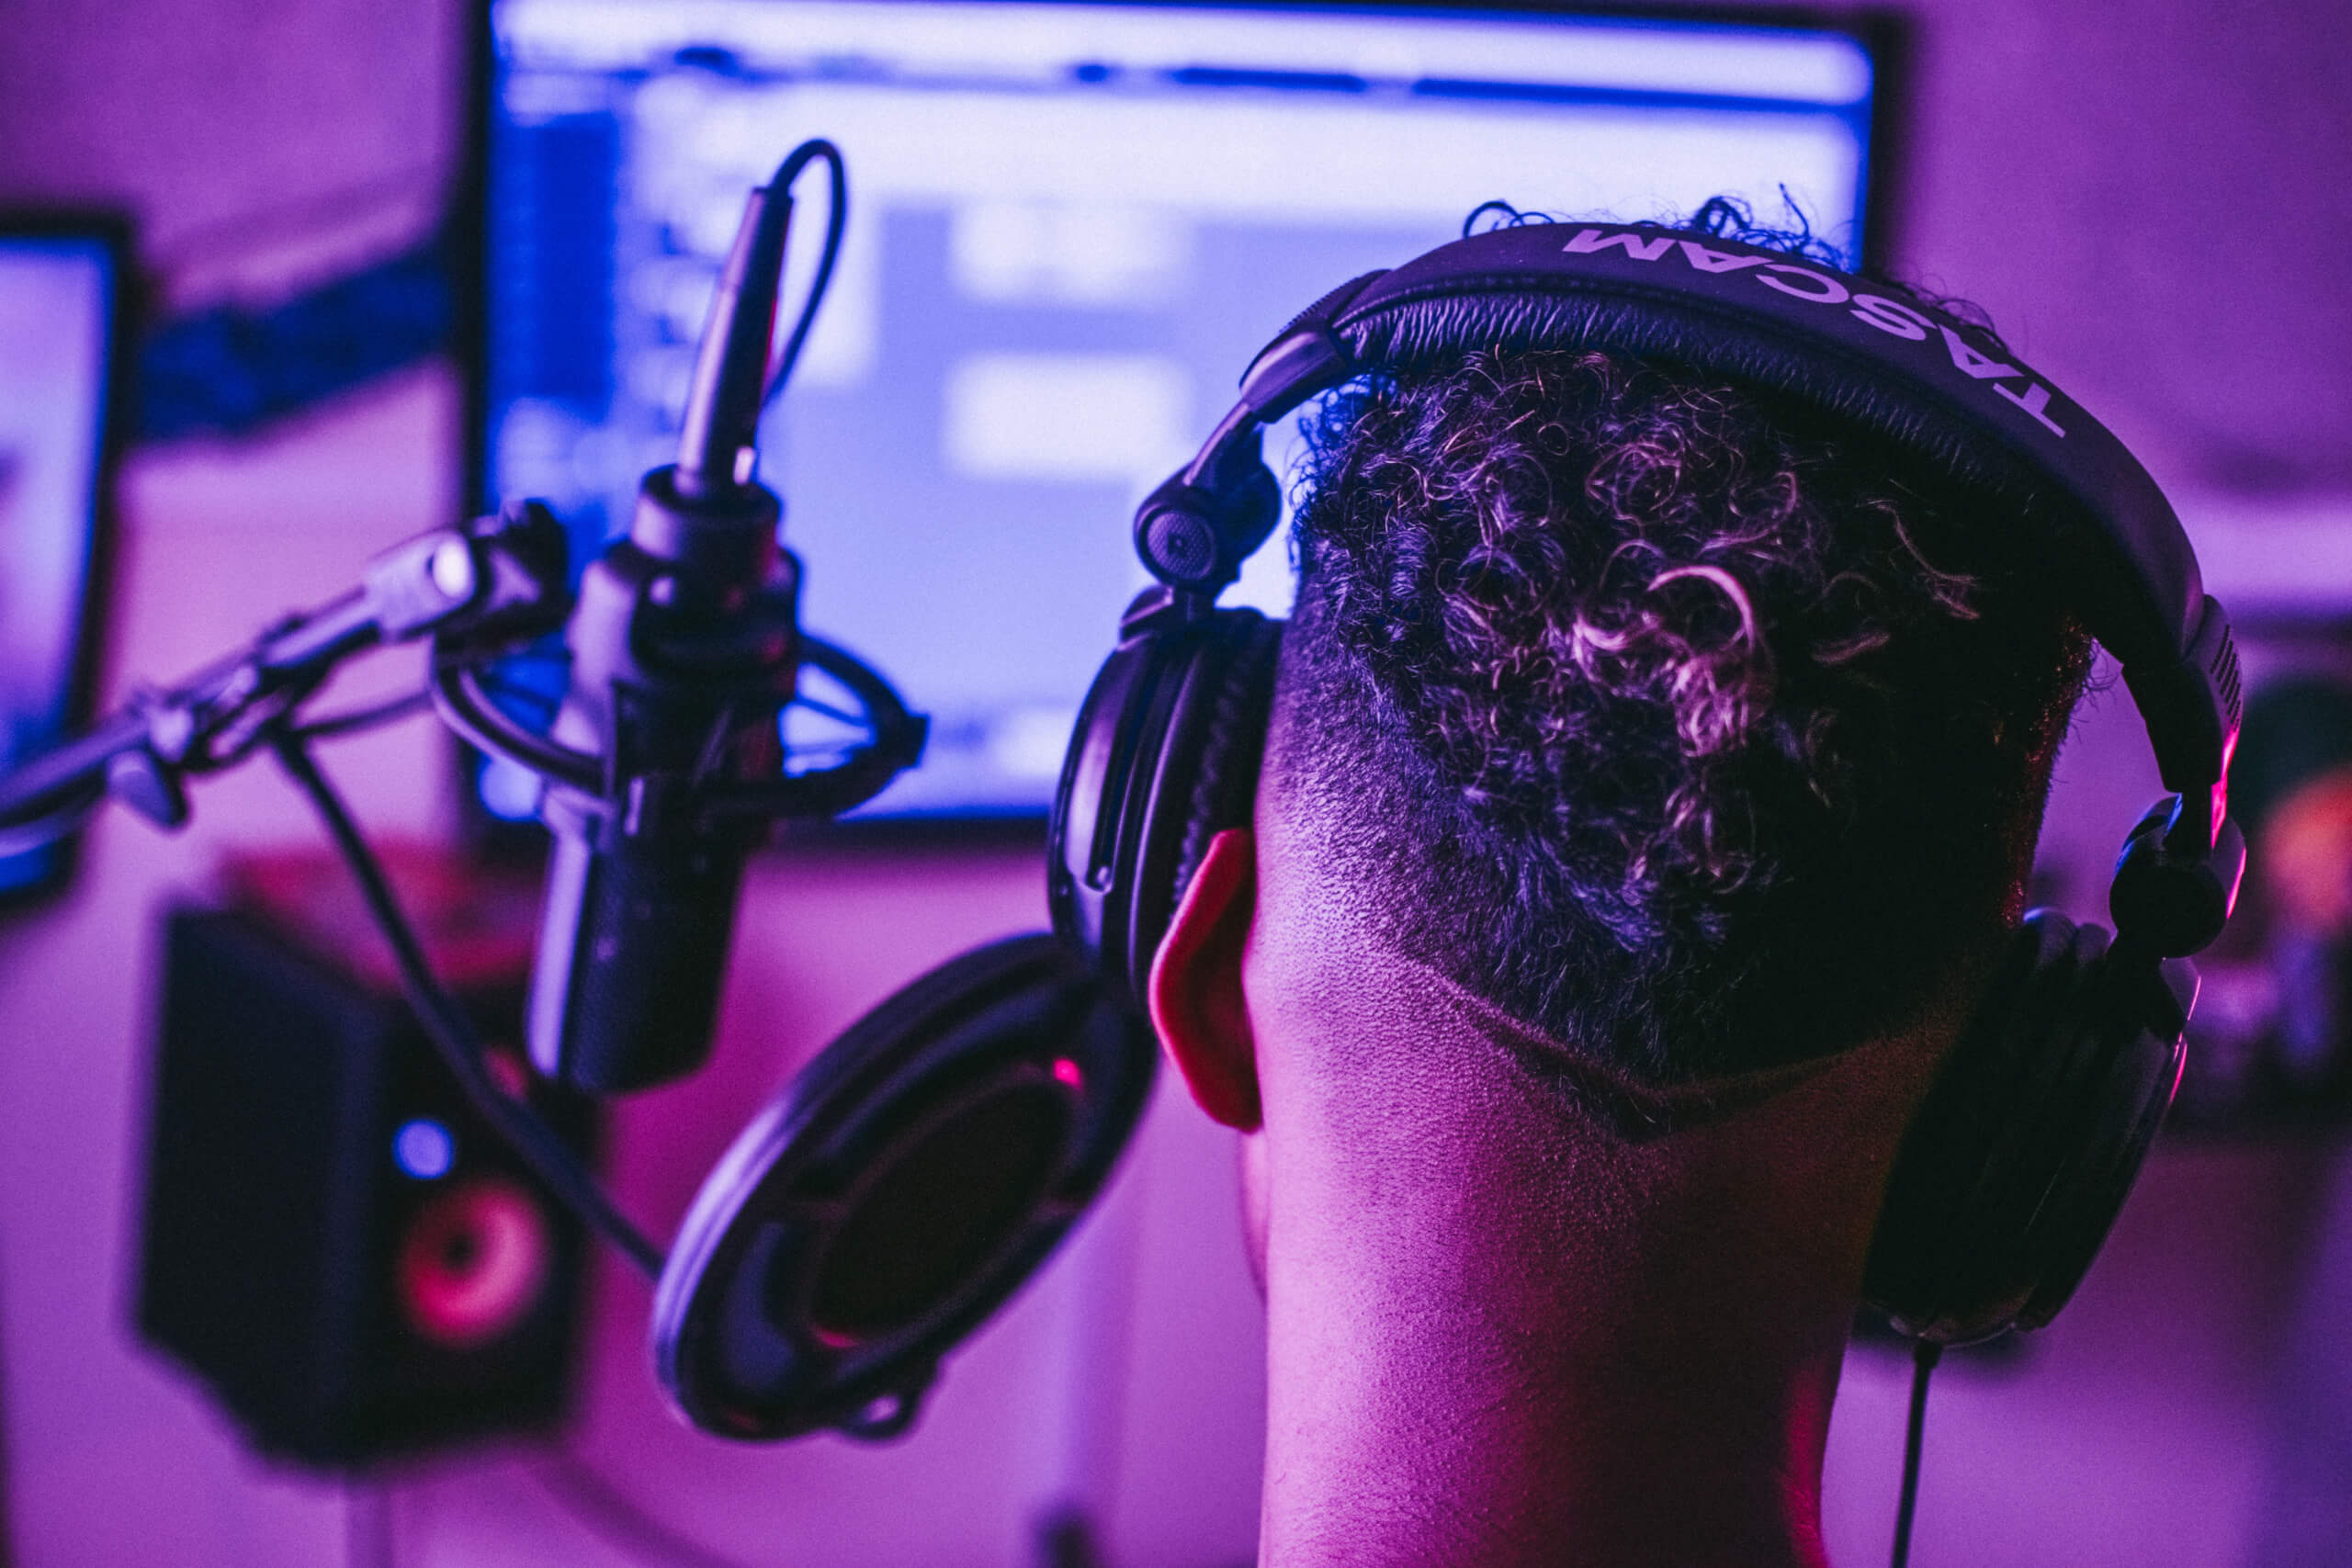 audio description software: man wearing headphones using microphone with computer in the background